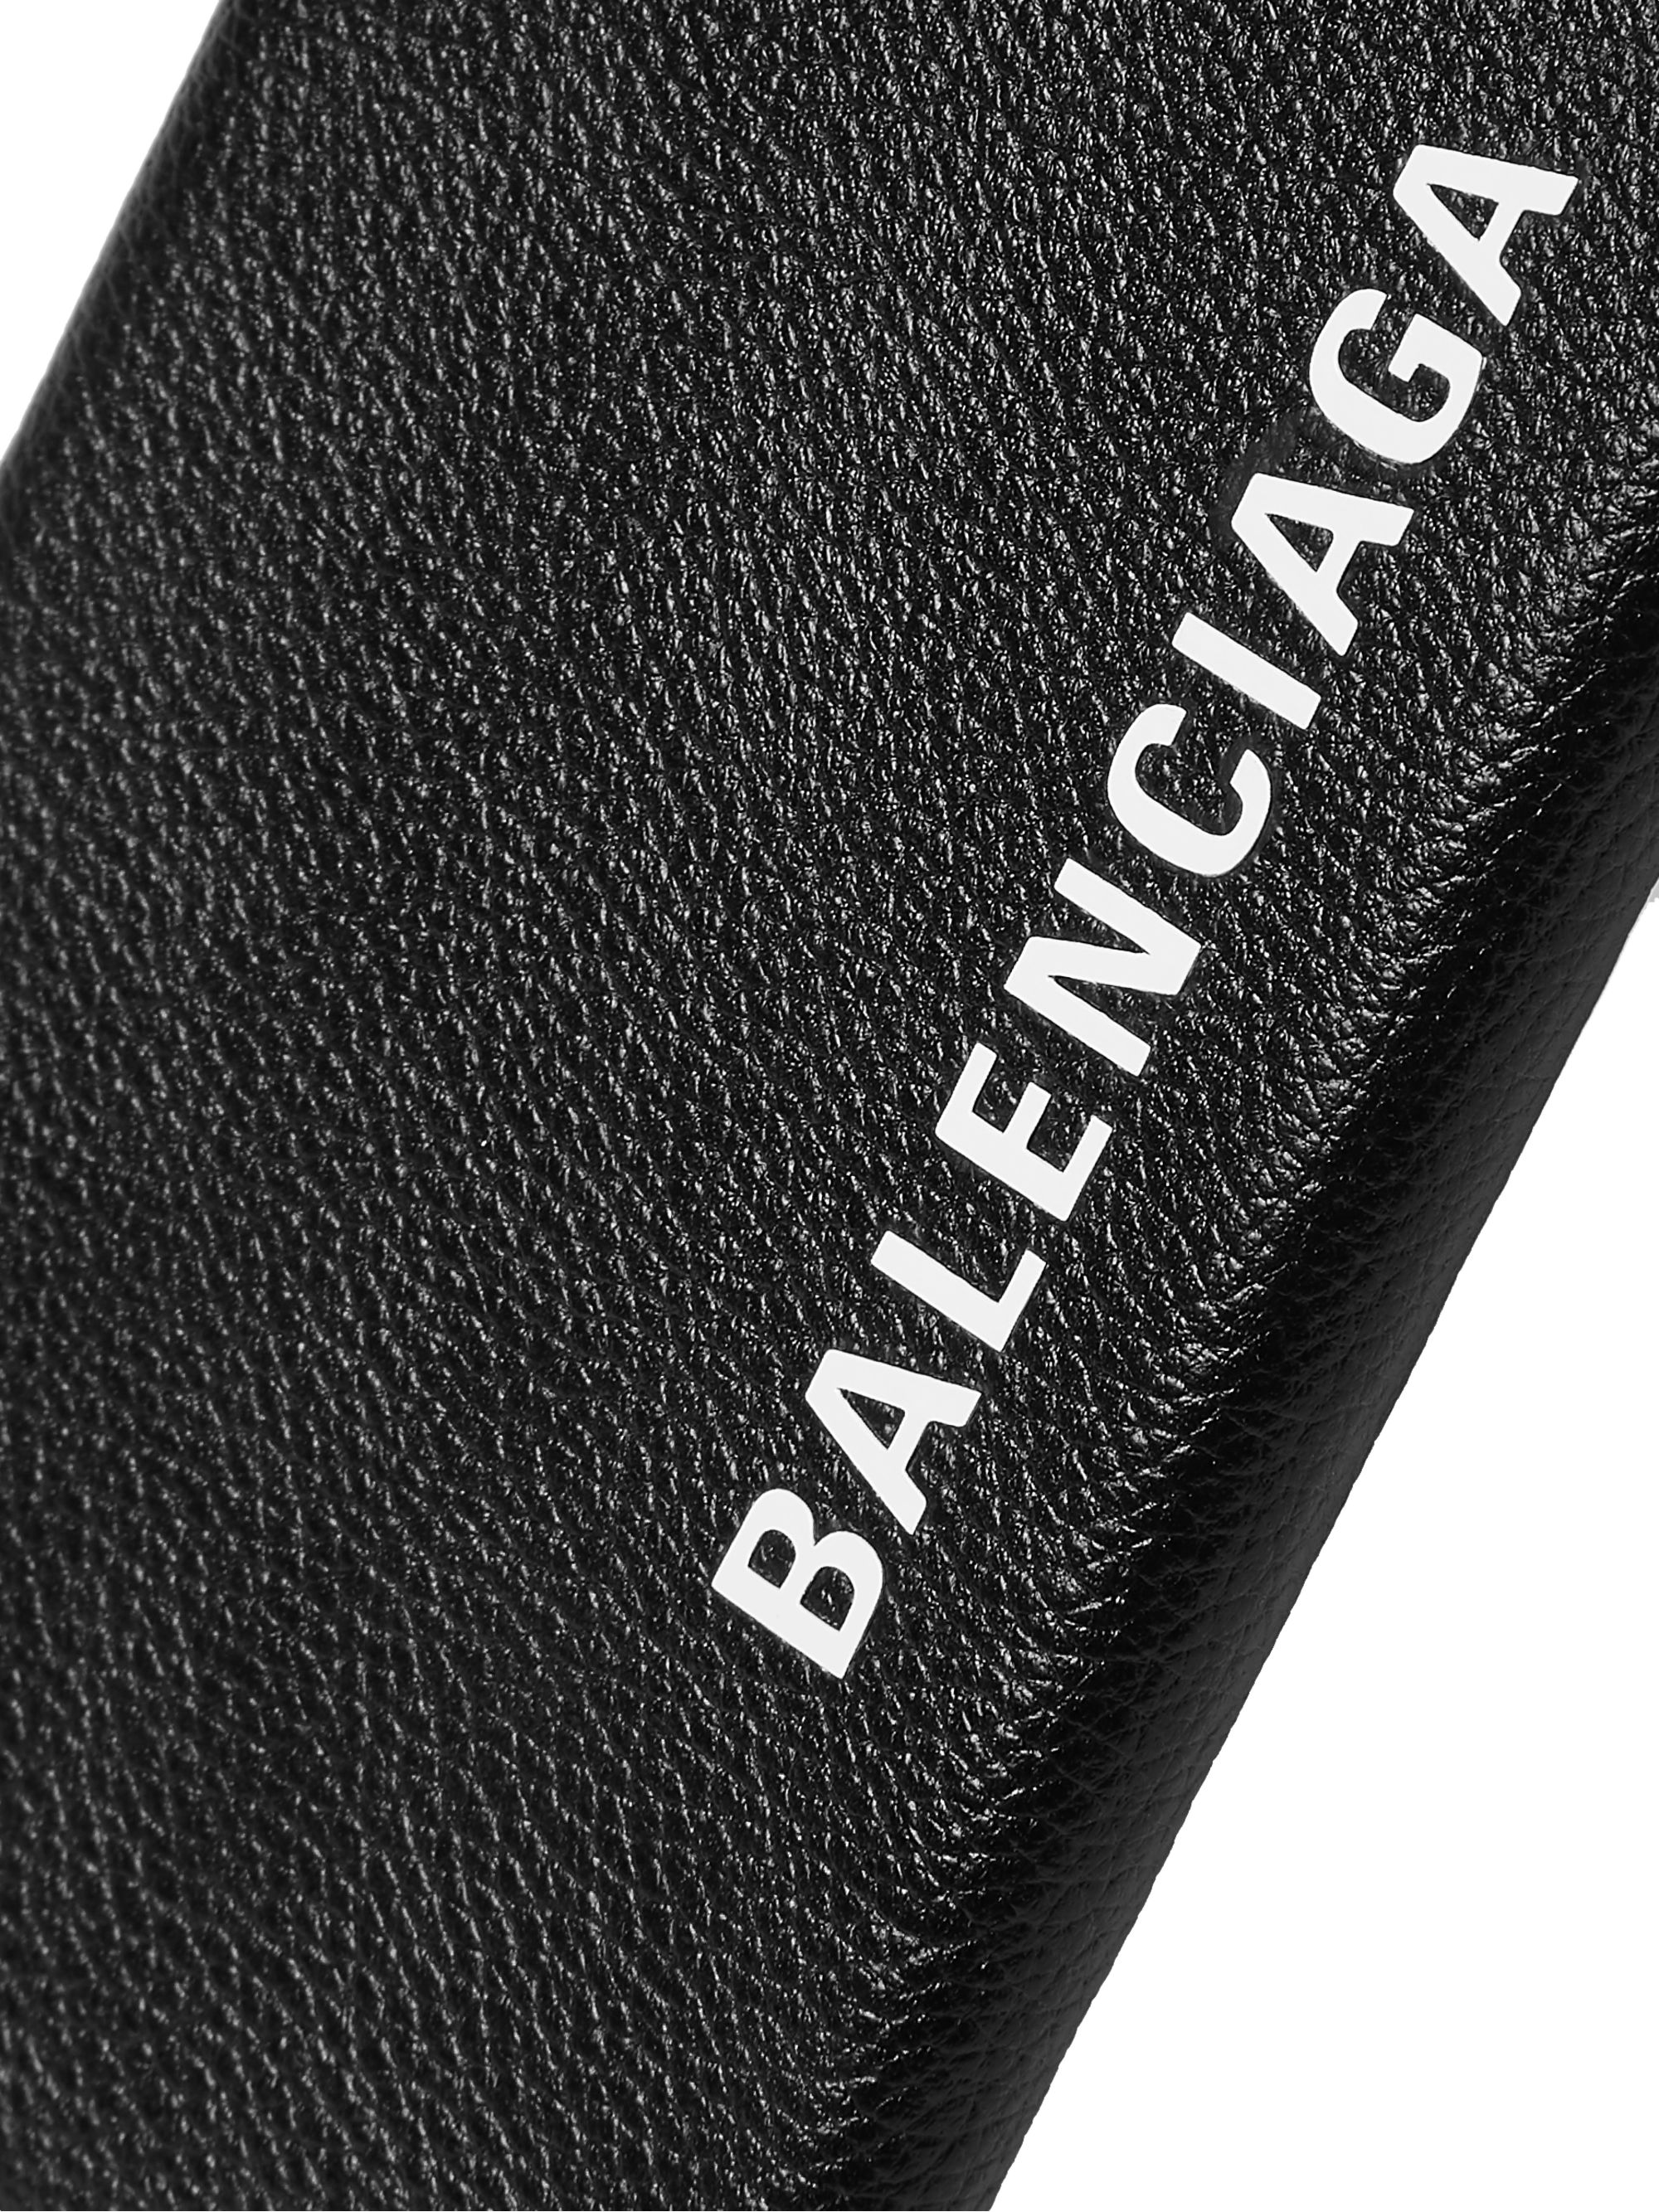 Balenciaga Logo-Print Full-Grain Leather iPhone 11 Pro Max Case